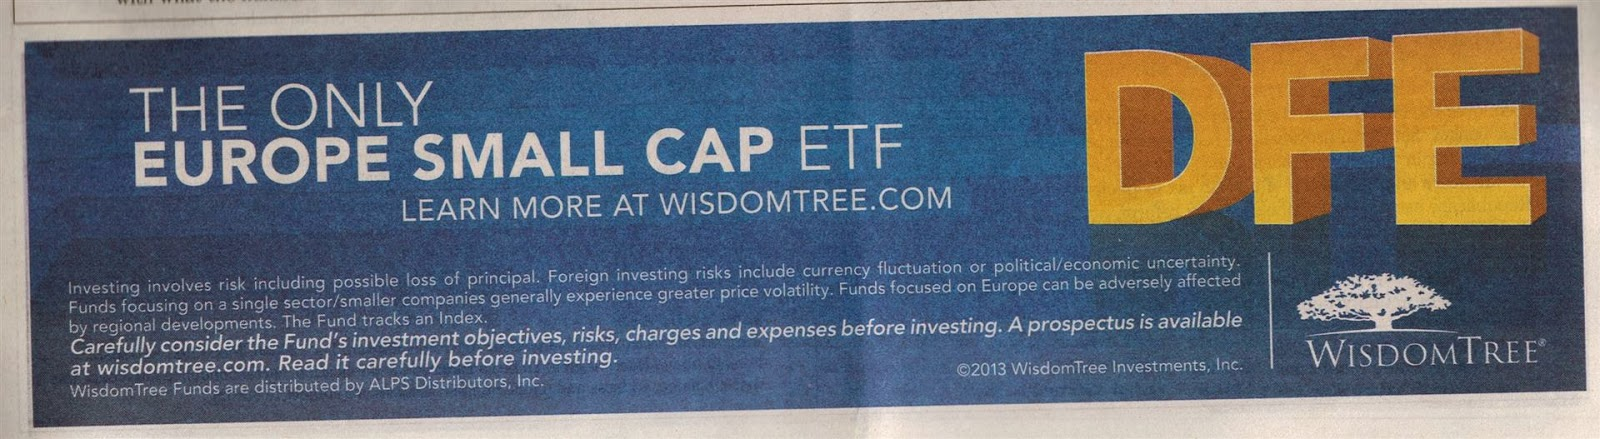 WisdomTree Europe SmallCap Dividend Fund - DFE ETF